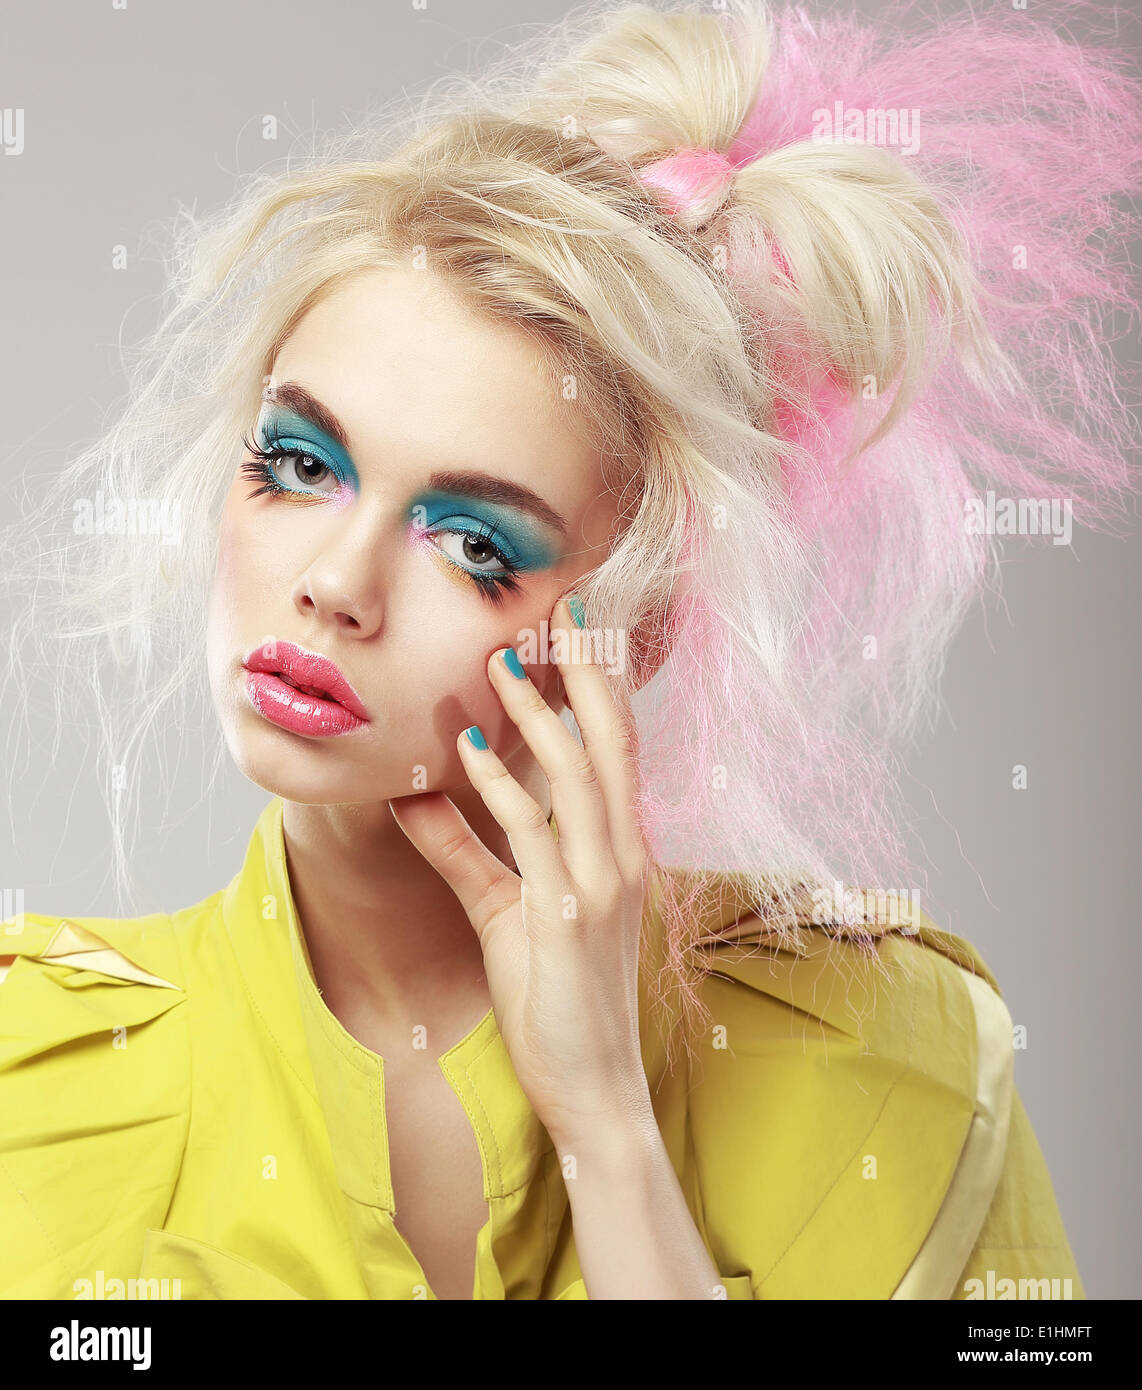 Portrait of Bright Blonde with Shaggy Hair and Blue Eye Makeup. Glam - Stock Image